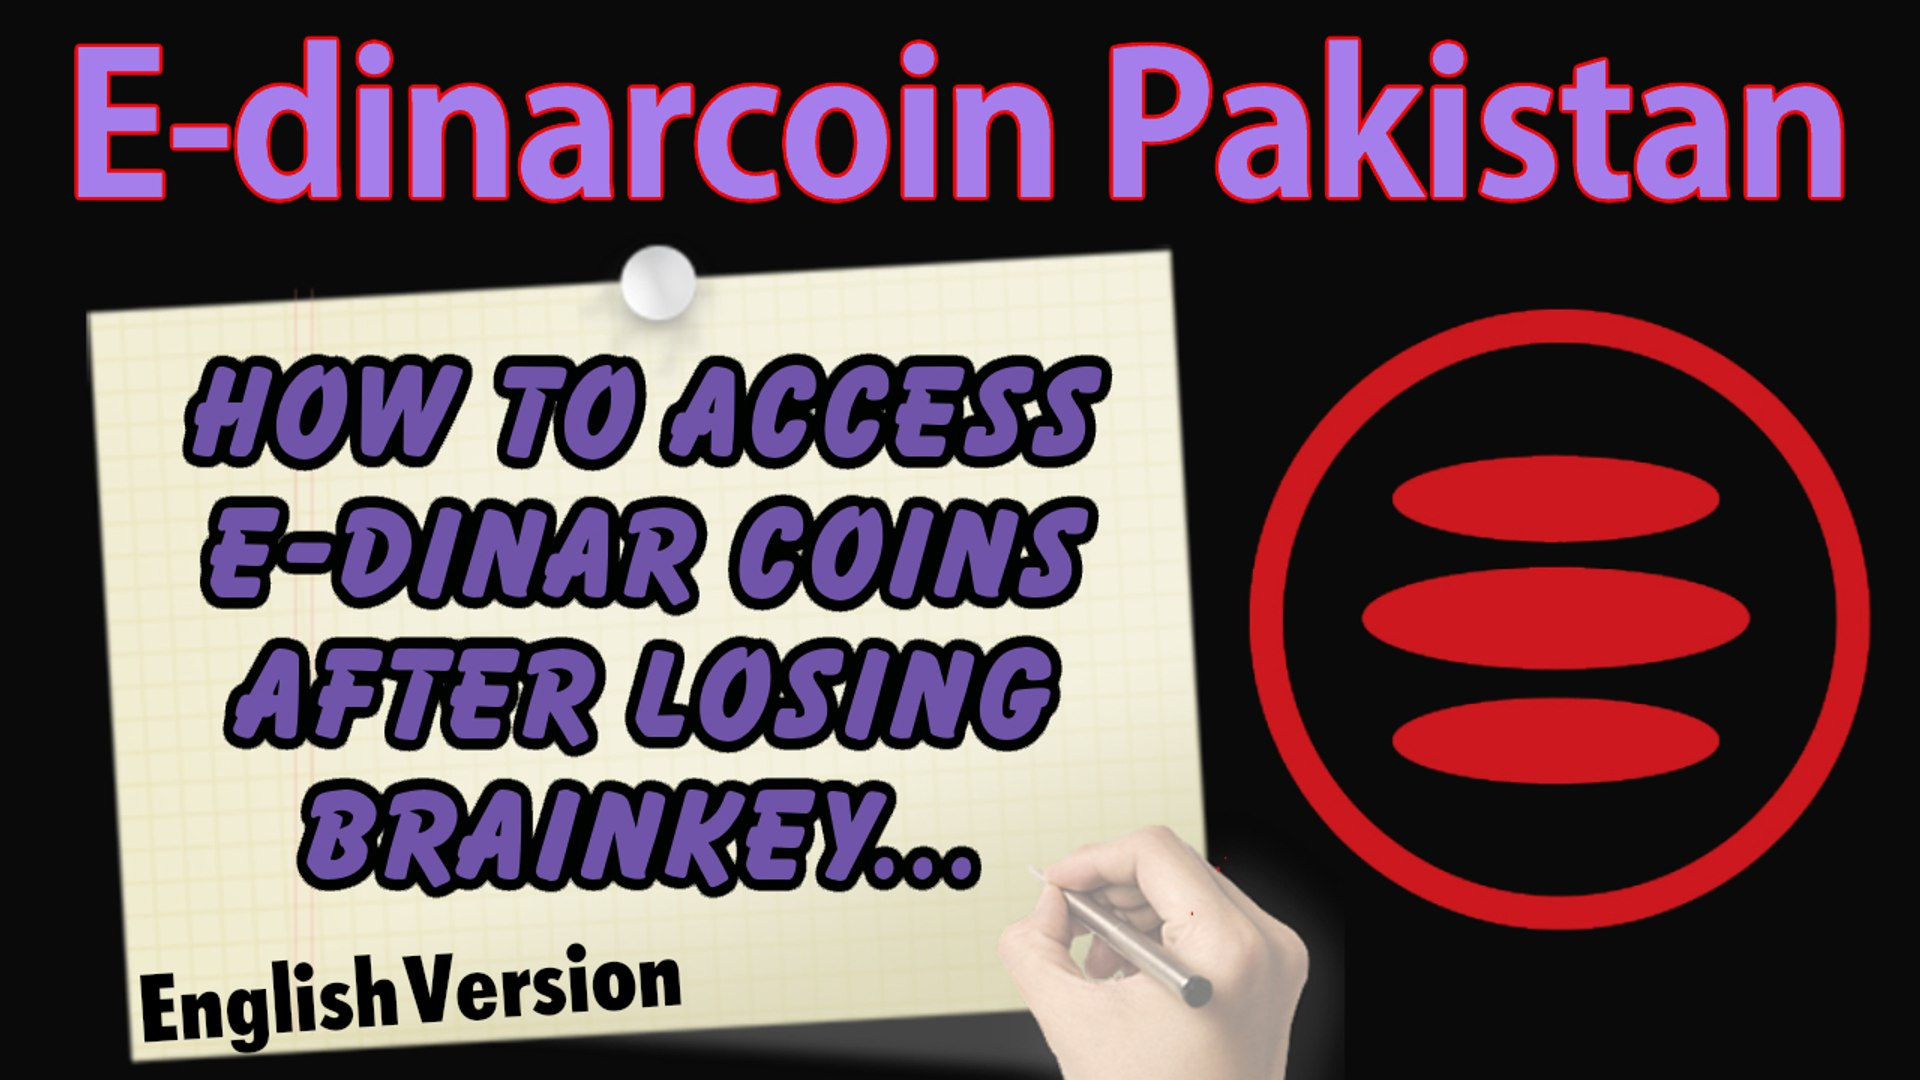 How to access e-dinar coins without brainkey - How to access your e-dinar coins from another account